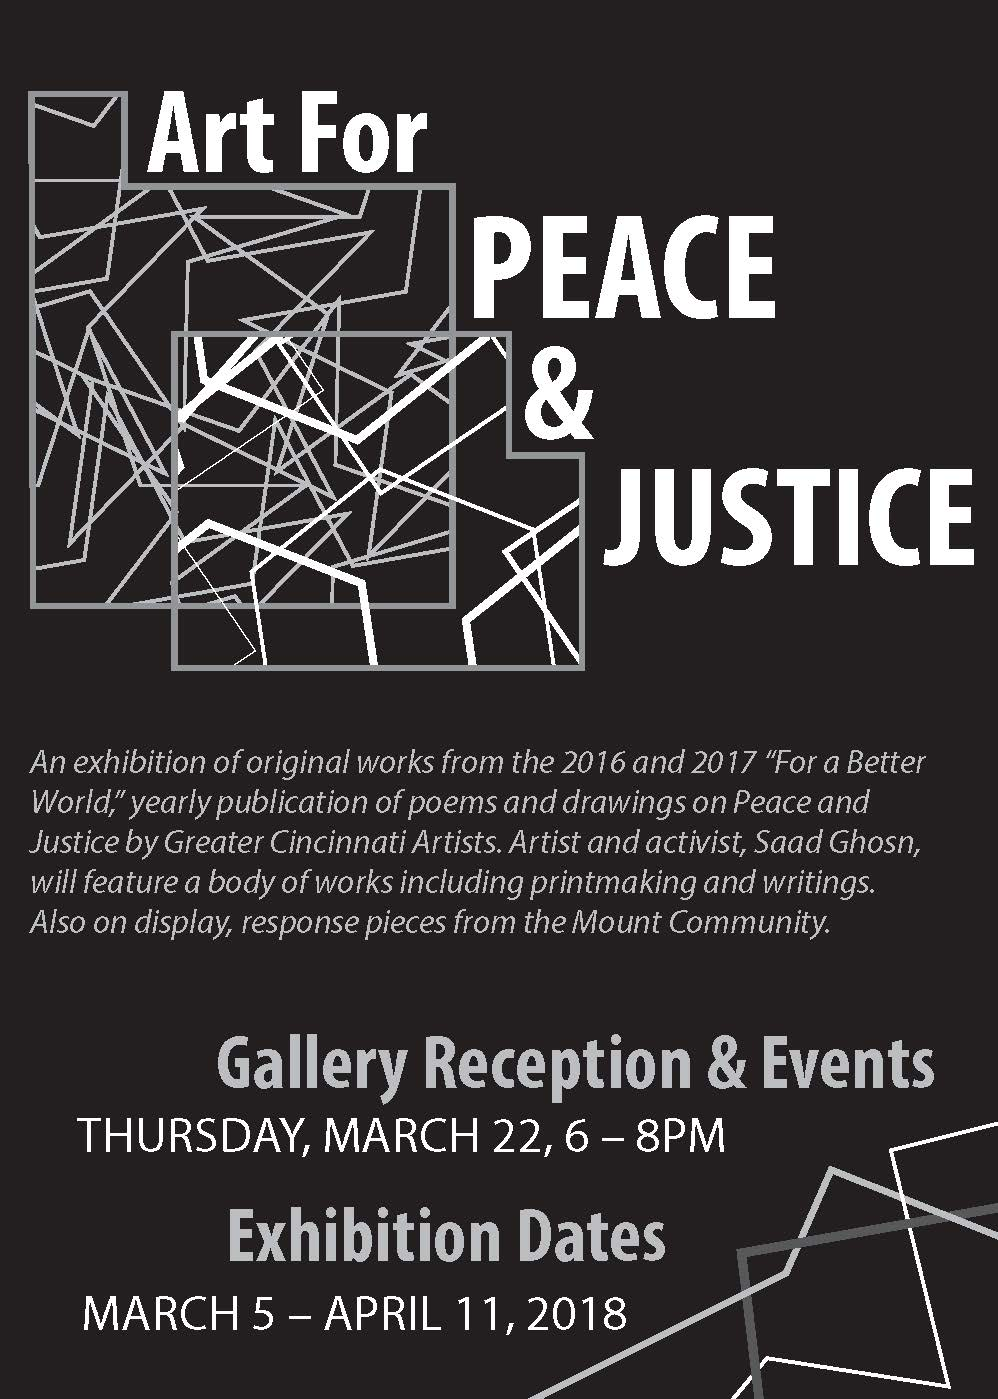 Art For Peace & Justice  Opening: March 22, 2018, 6 - 8pm March 5 - April 11, 2018 Studio San Giuseppe Art Gallery Mount St. Joseph University 5701 Delhi Road Cincinnati, OH 45233